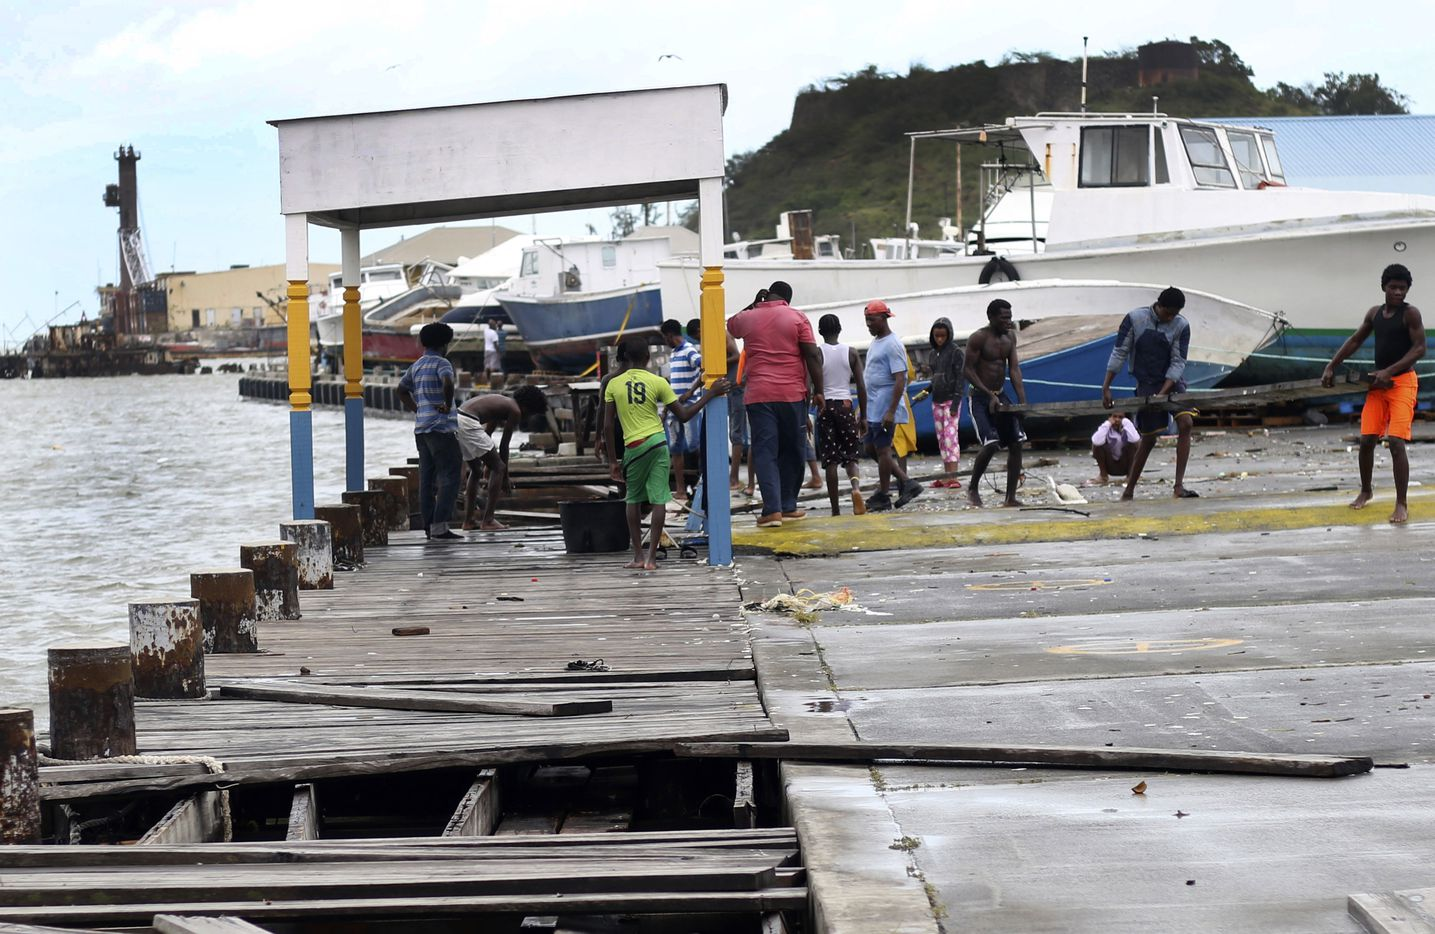 People recover broken parts of the dock after the passing of Hurricane Irma, in St. John's, Antigua and Barbuda, on Wednesday.